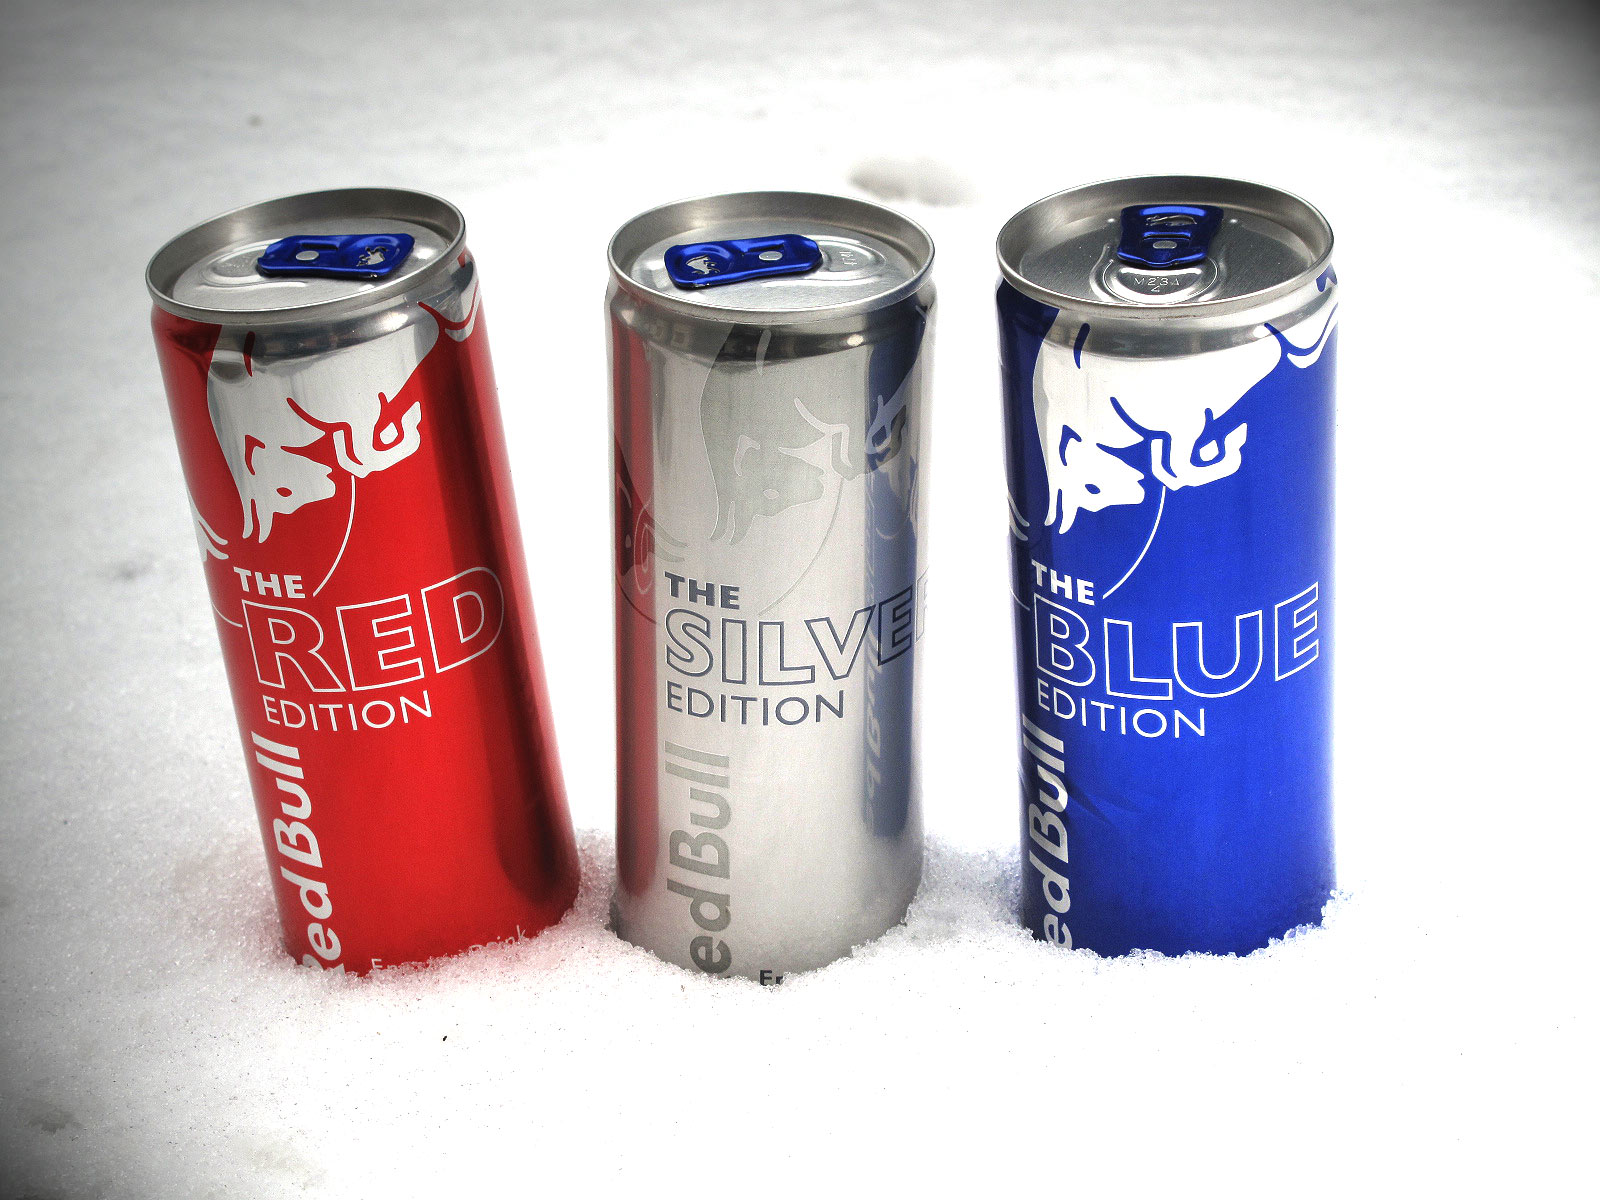 Red Bull (Red, Blue, and Silver Edition)